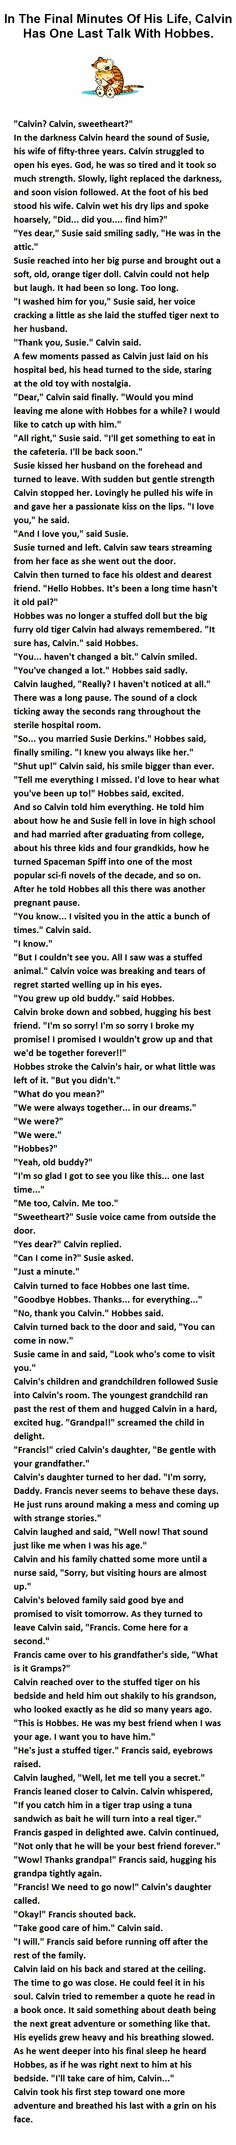 The final Calvin & Hobbes story - fan fiction